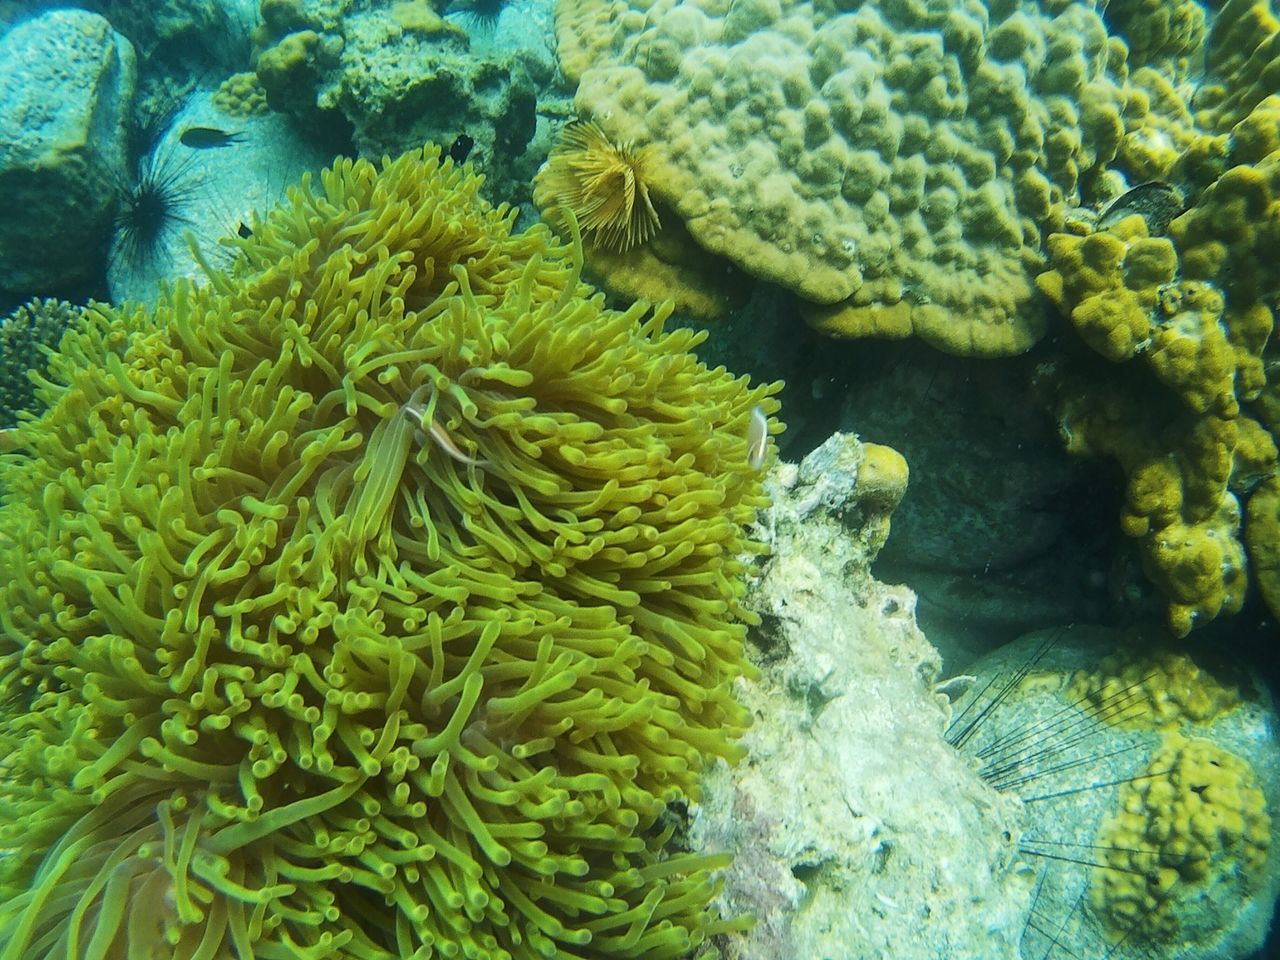 underwater, sea, sea life, animals in the wild, coral, animal wildlife, undersea, invertebrate, water, marine, animal, animal themes, no people, green color, nature, beauty in nature, close-up, vertebrate, fish, outdoors, ecosystem